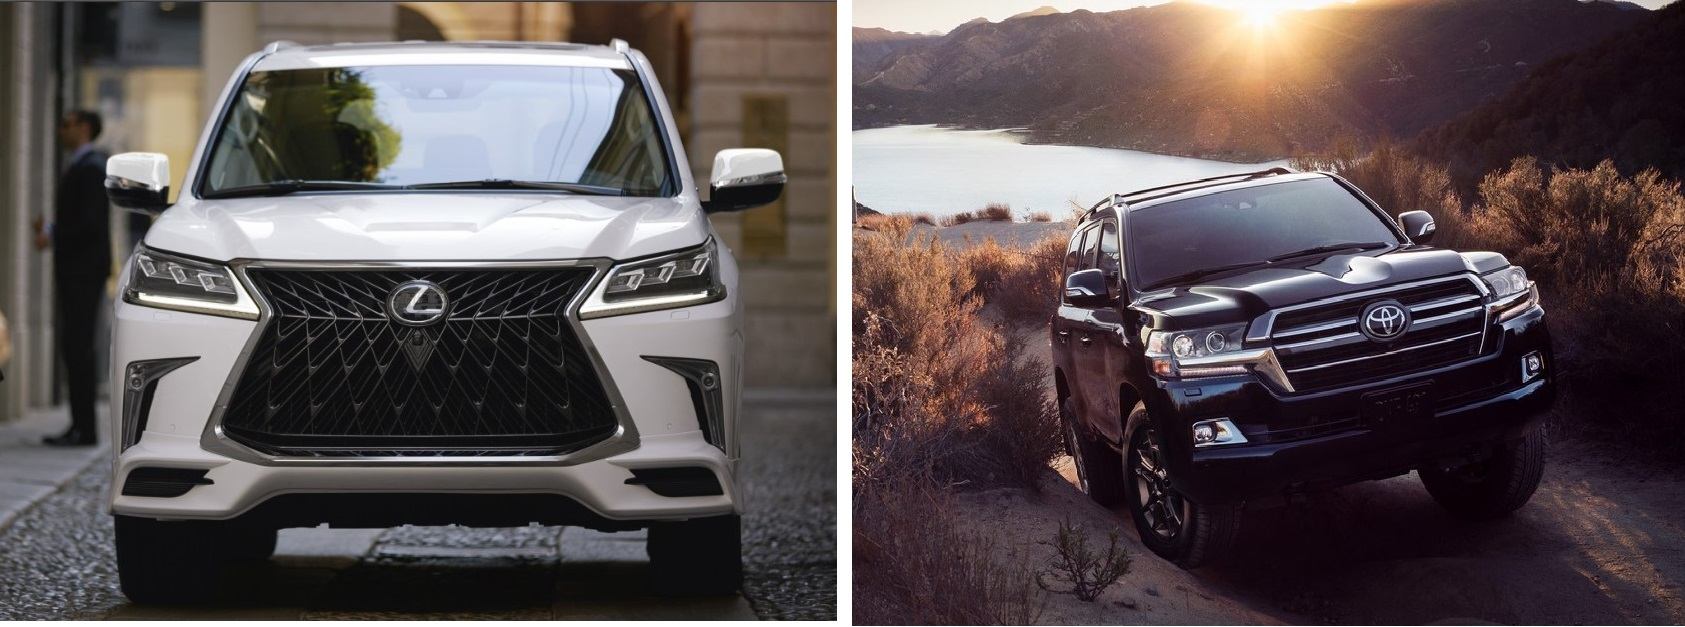 2020 Lexus LX 570 vs. 2020 Toyota Land Cruiser